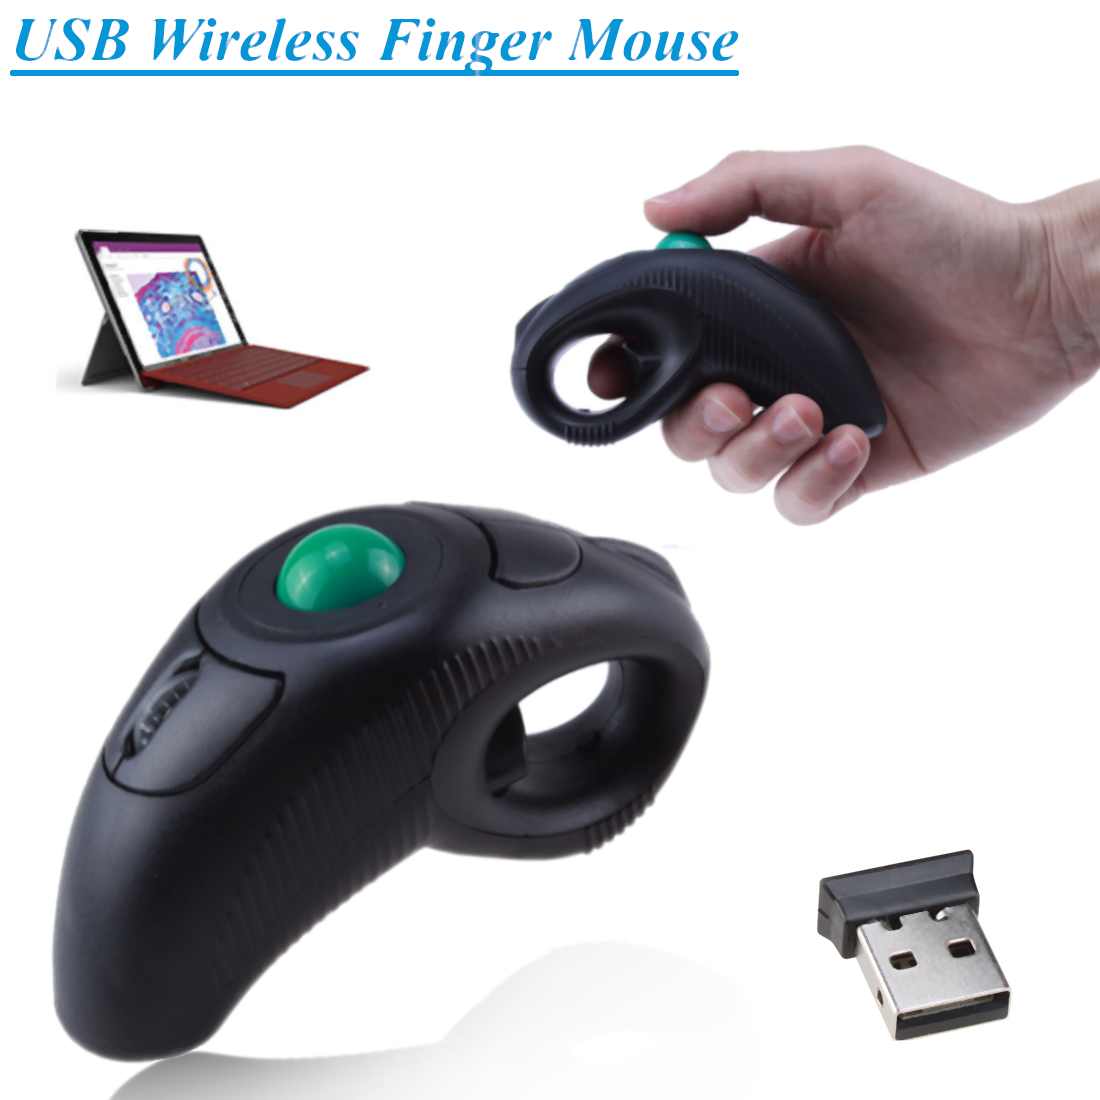 c592a179179 Details about USB Wireless Finger HandHeld Trackball Mouse Mice Tablet PC  Laptop Battery power